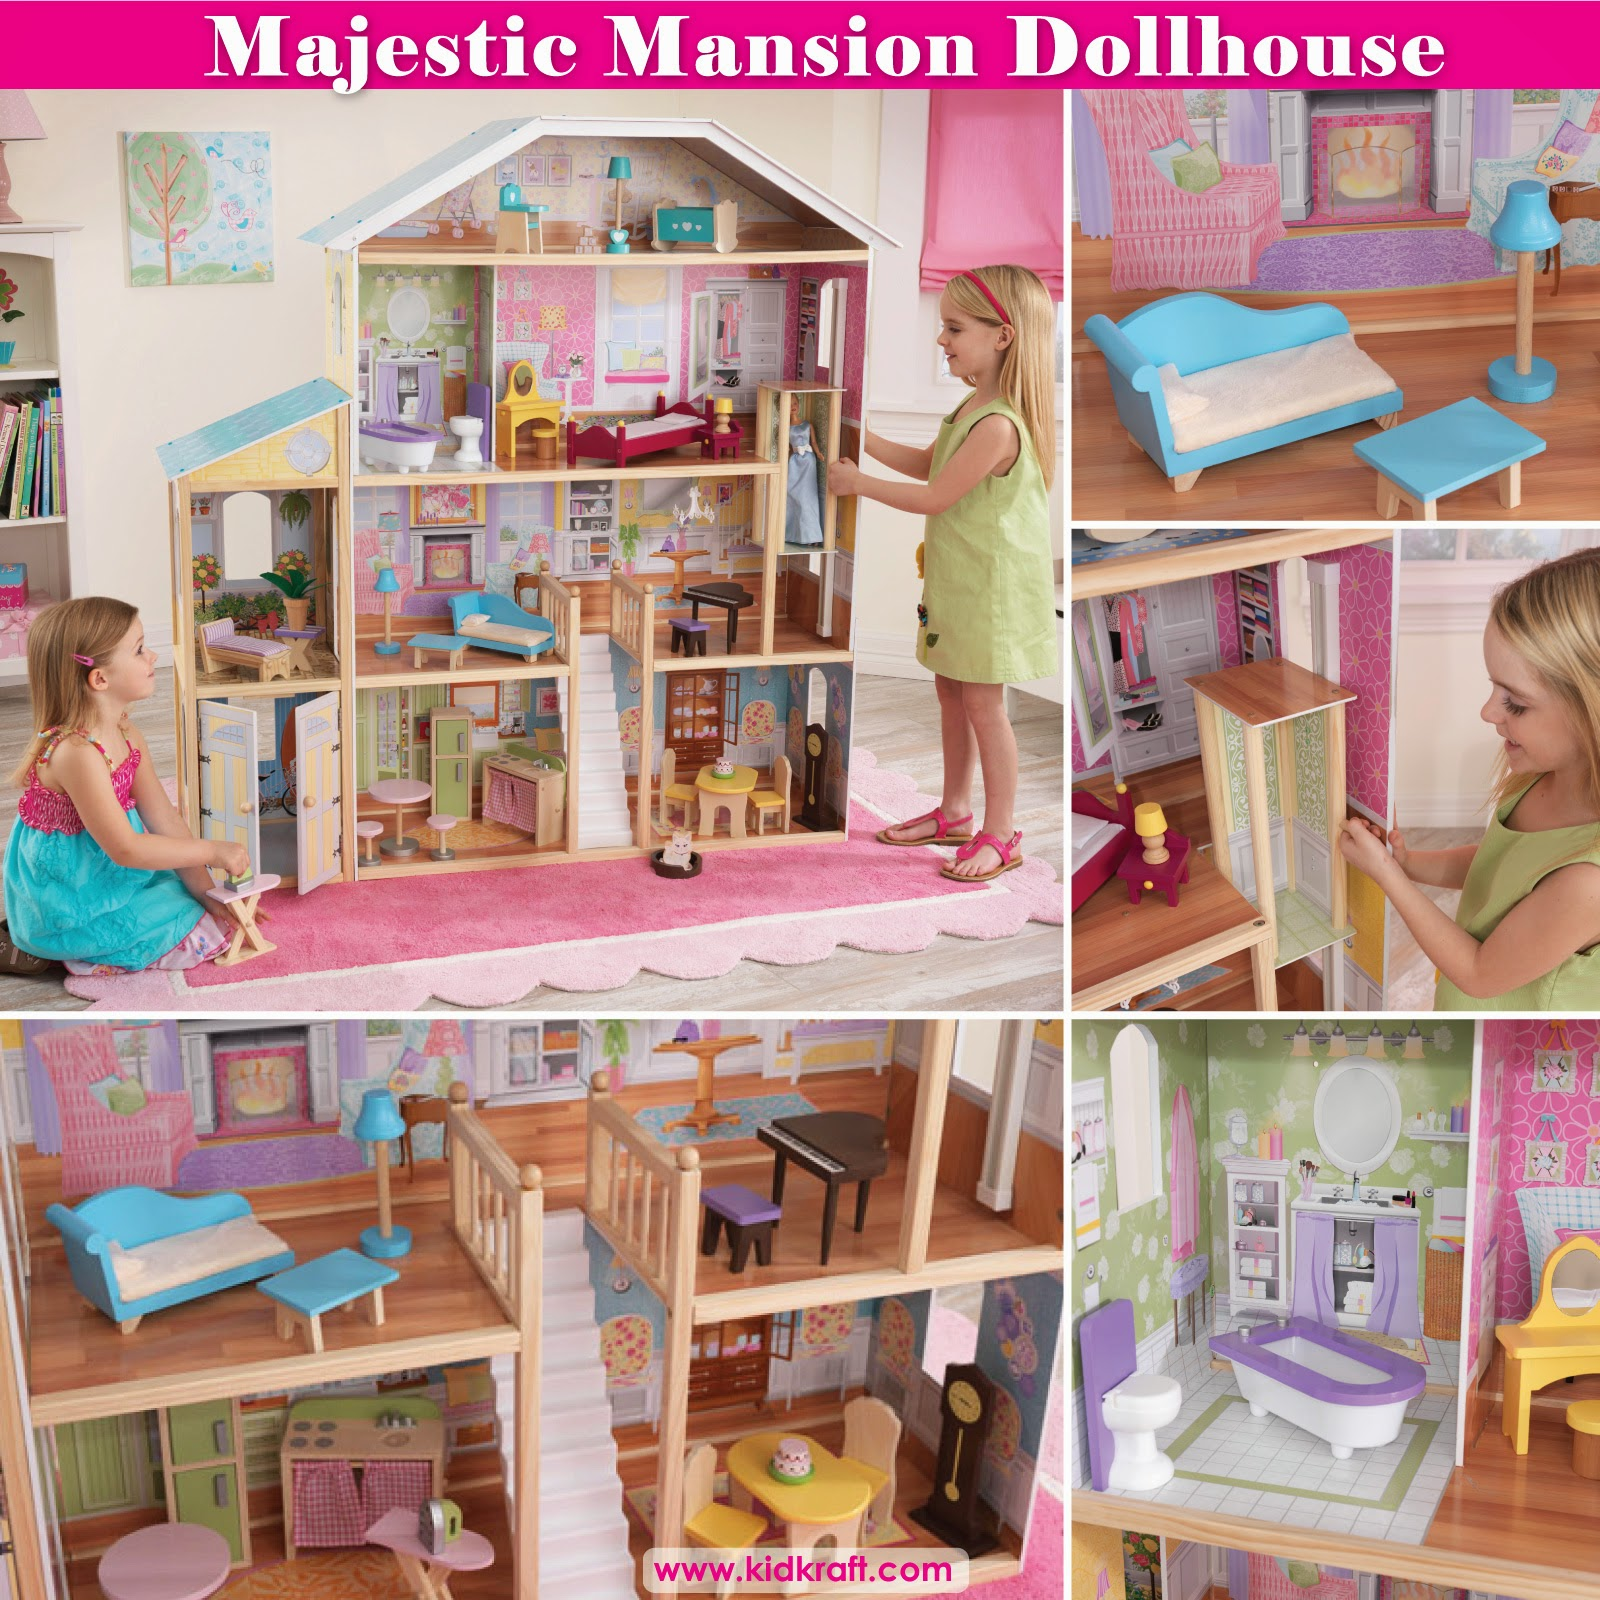 Lovely Kidkraft Majestic Mansion Dollhouse 65252 For Kids Play Room Furniture Ideas: Lovely Kidkraft Majestic Mansion Dollhouse 65252 Made Of Wood For Kids Play Room Furniture Ideas